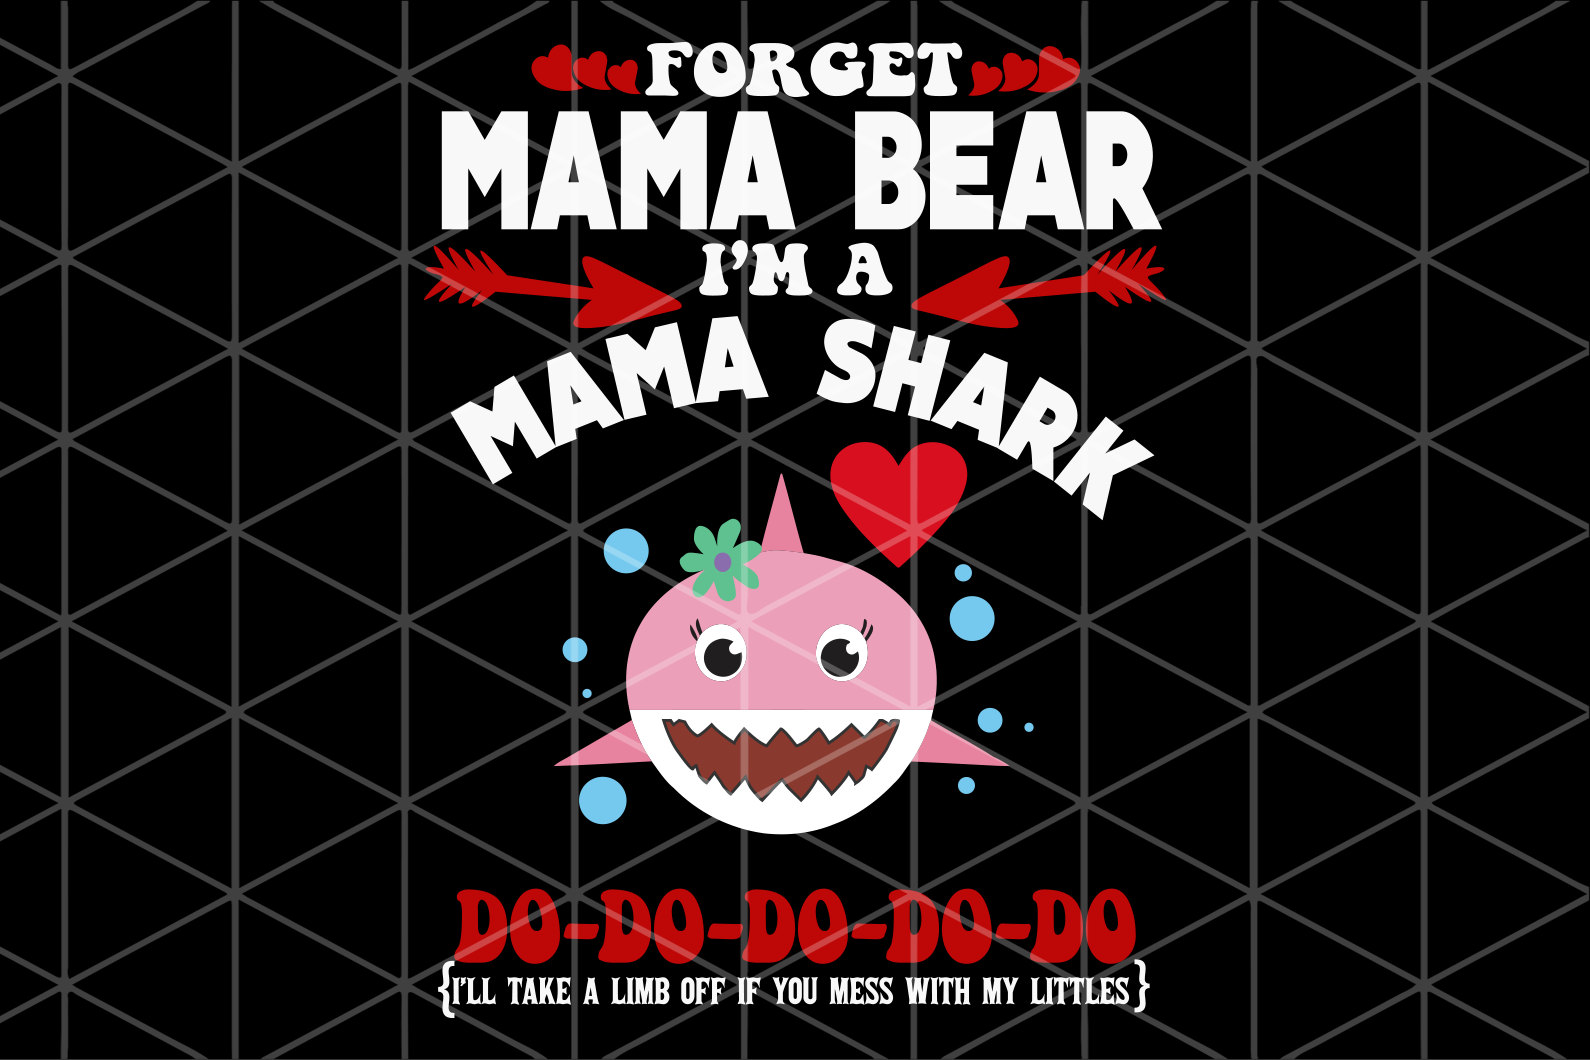 Forget mama bear i'm a mama shark do do,  mama bear svg, bear svg, bear, mama bear shirt, bear family,family svg, family shirt,family gift,trending svg, Files For Silhouette, Files For Cricut, SVG, DXF, EPS, PNG, Instant Download